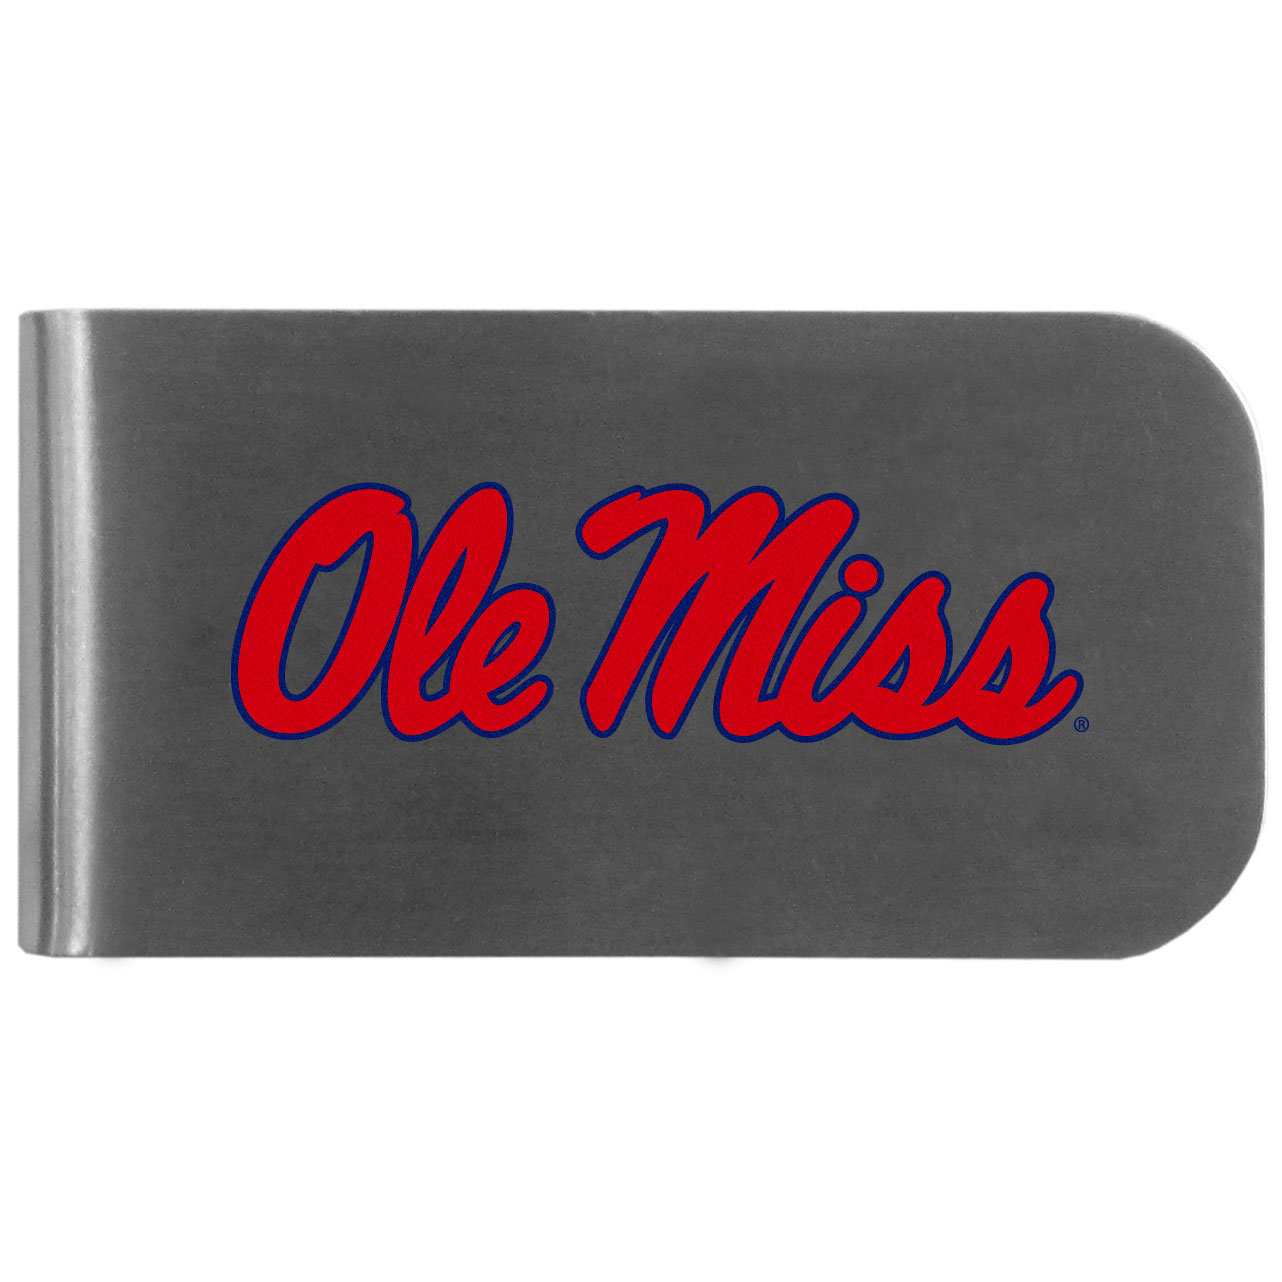 Mississippi Rebels Logo Bottle Opener Money Clip - This unique money clip features a classic, brushed-metal finish with a handy bottle opener feature on the back. The clip has the Mississippi Rebels logo expertly printed on the front of the clip.